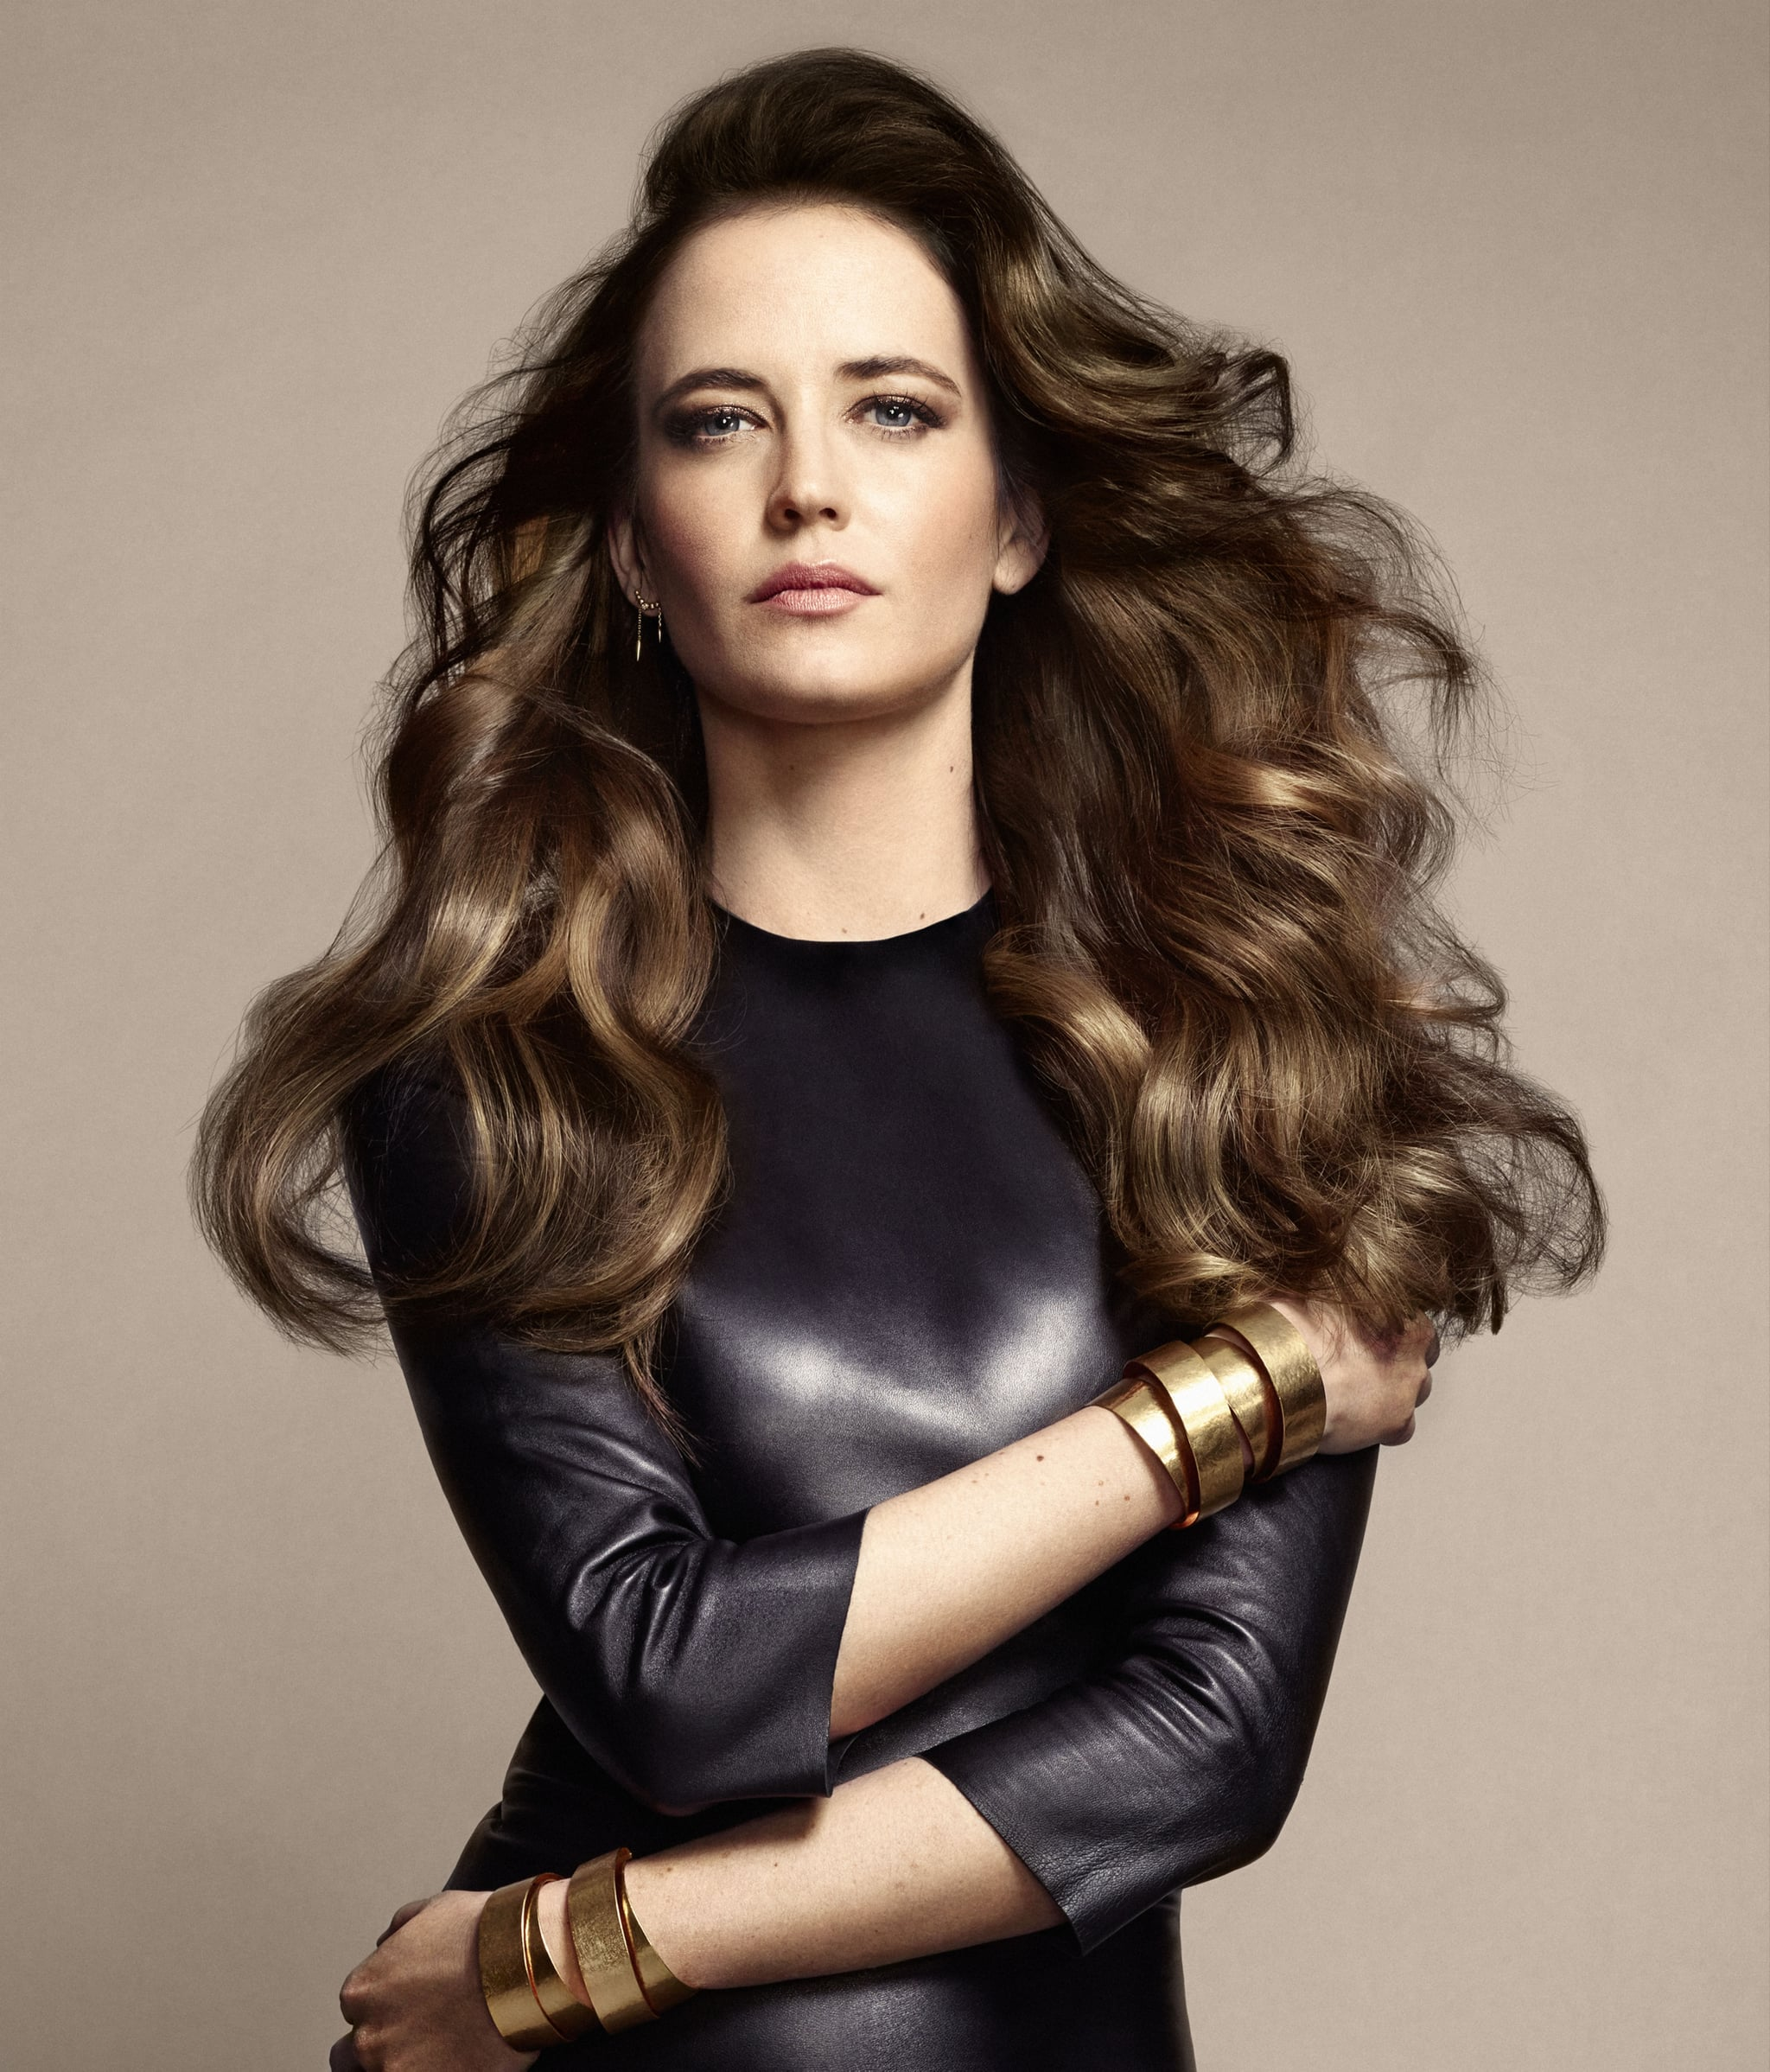 French Model and Actress Eva Green